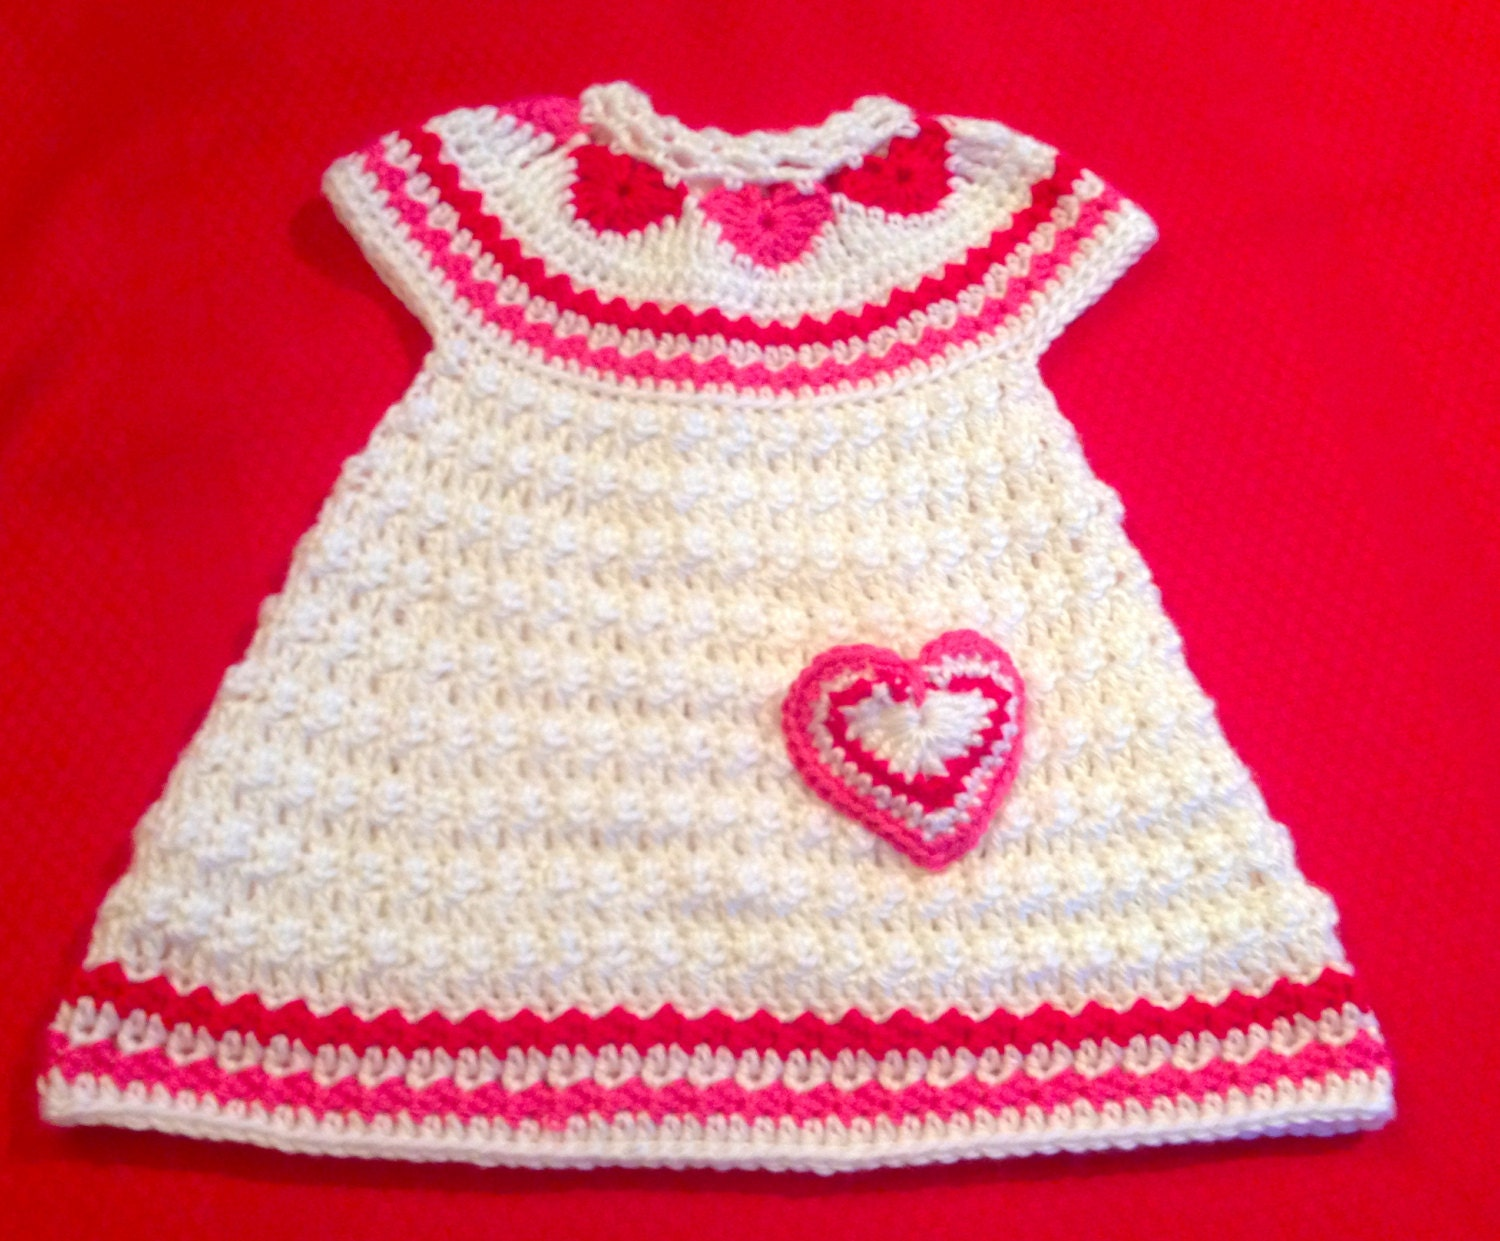 Crochet Pattern for Baby Toddler Jumper Dress Hearts of Love